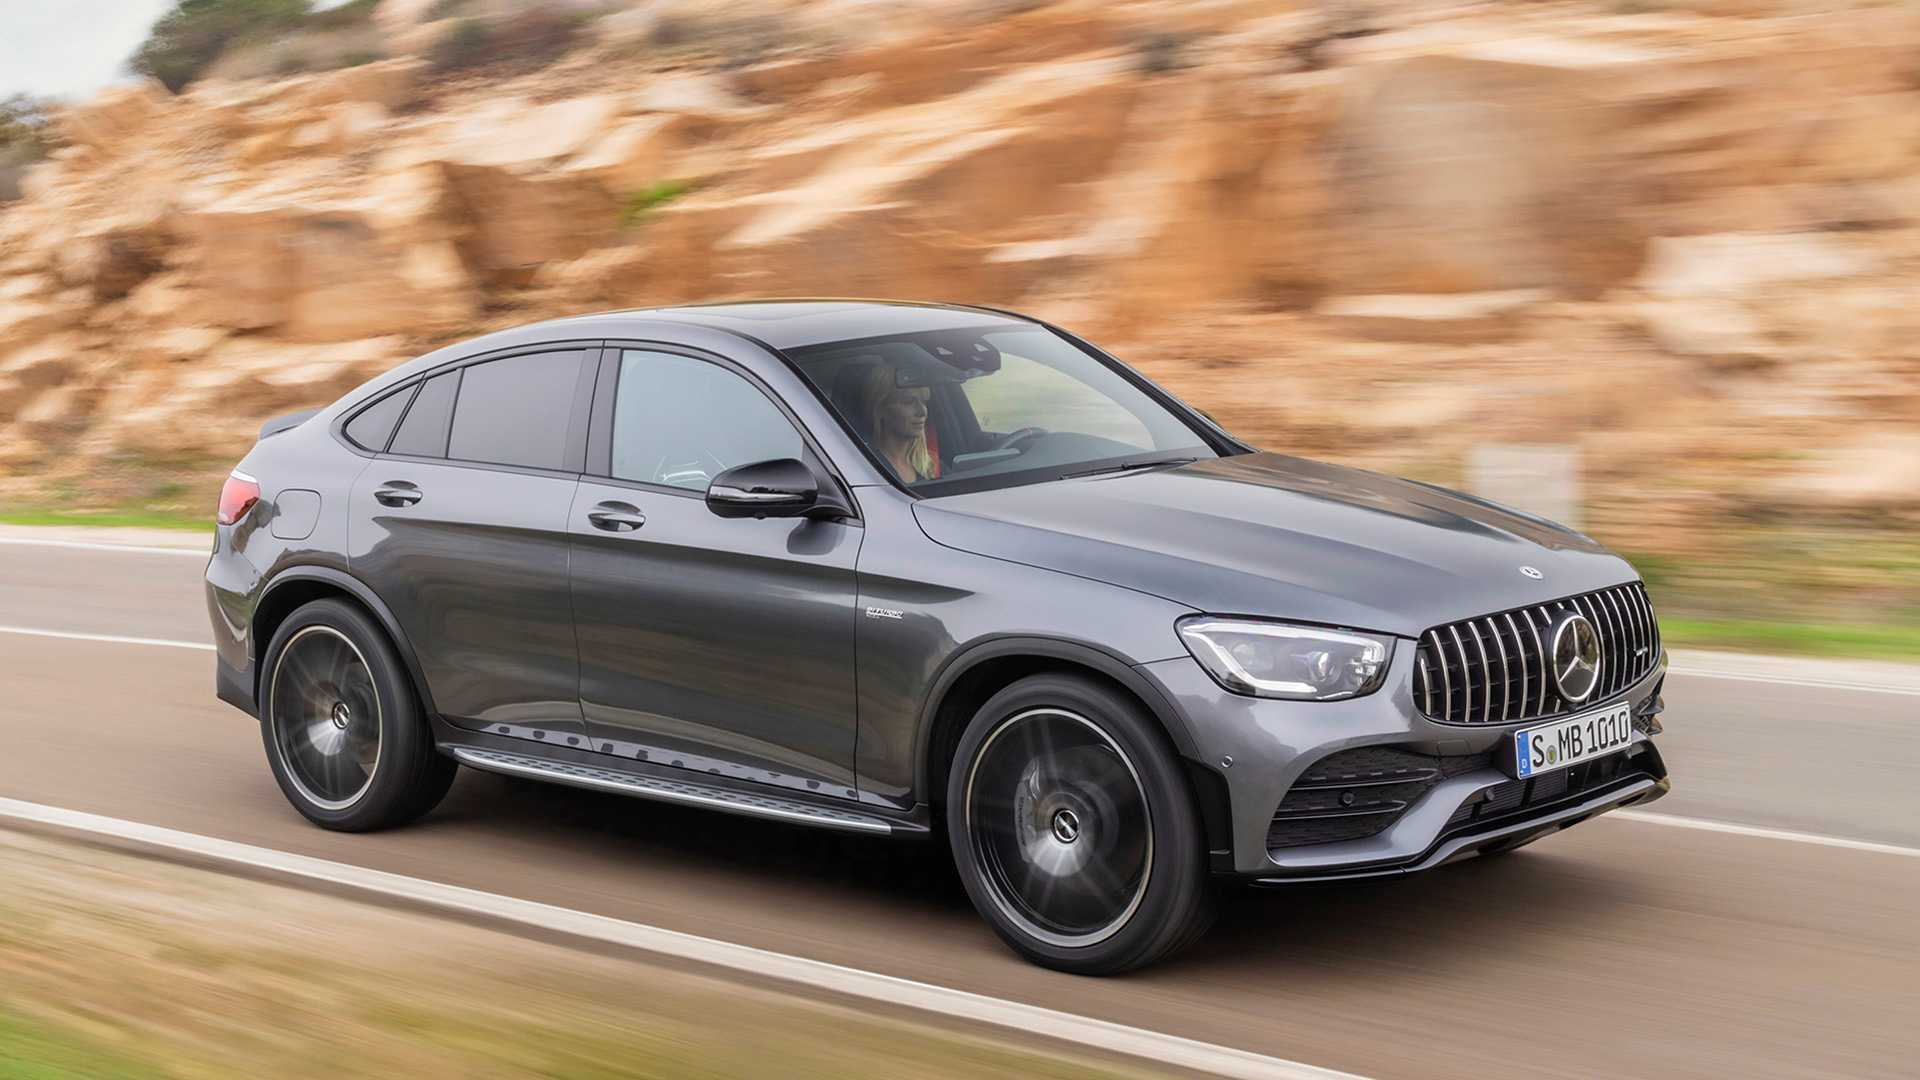 Mercedes Benz AMGs to be produced locally